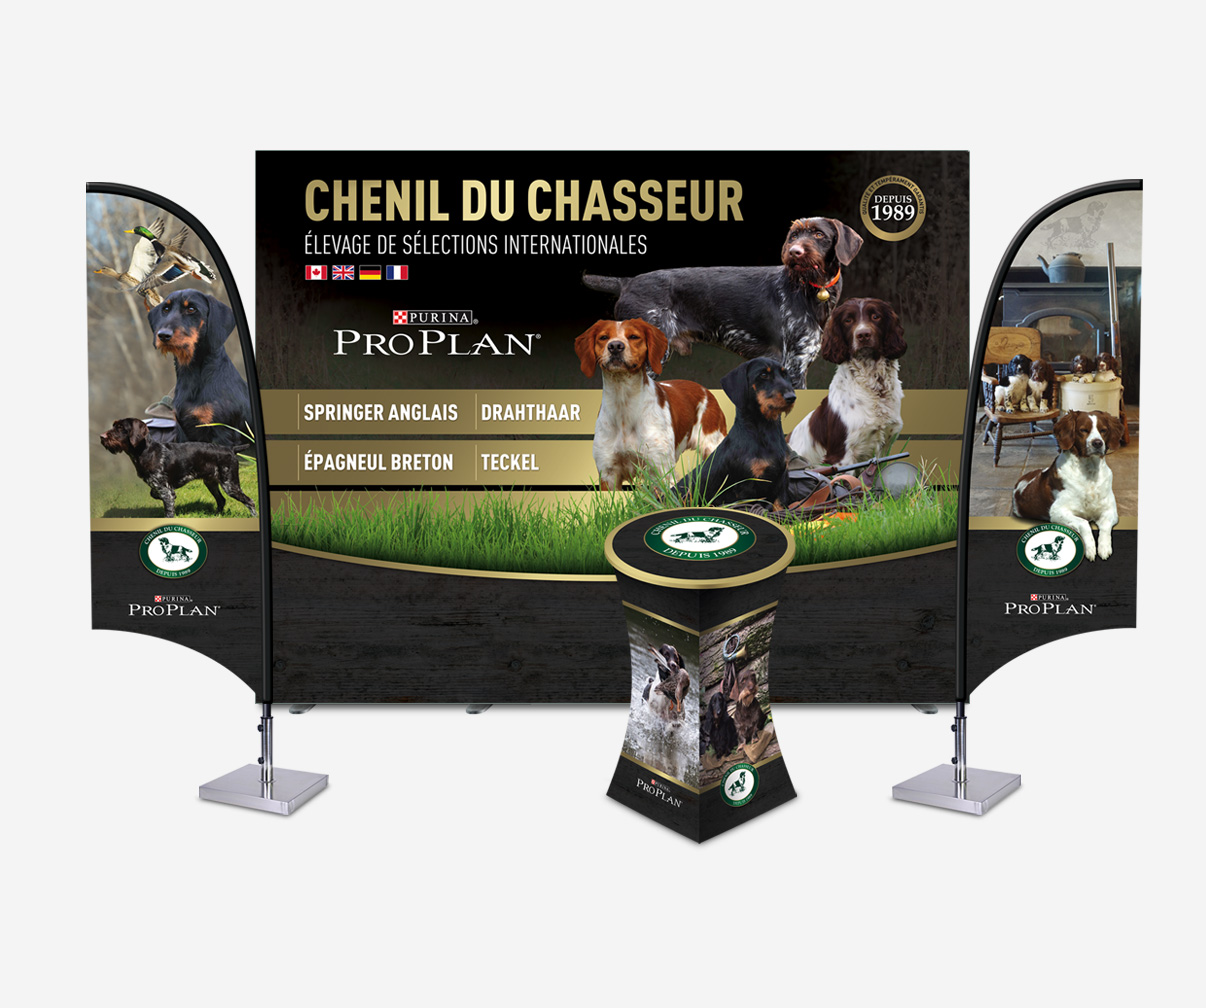 Chenil du chasseur - Kiosque promotionnel